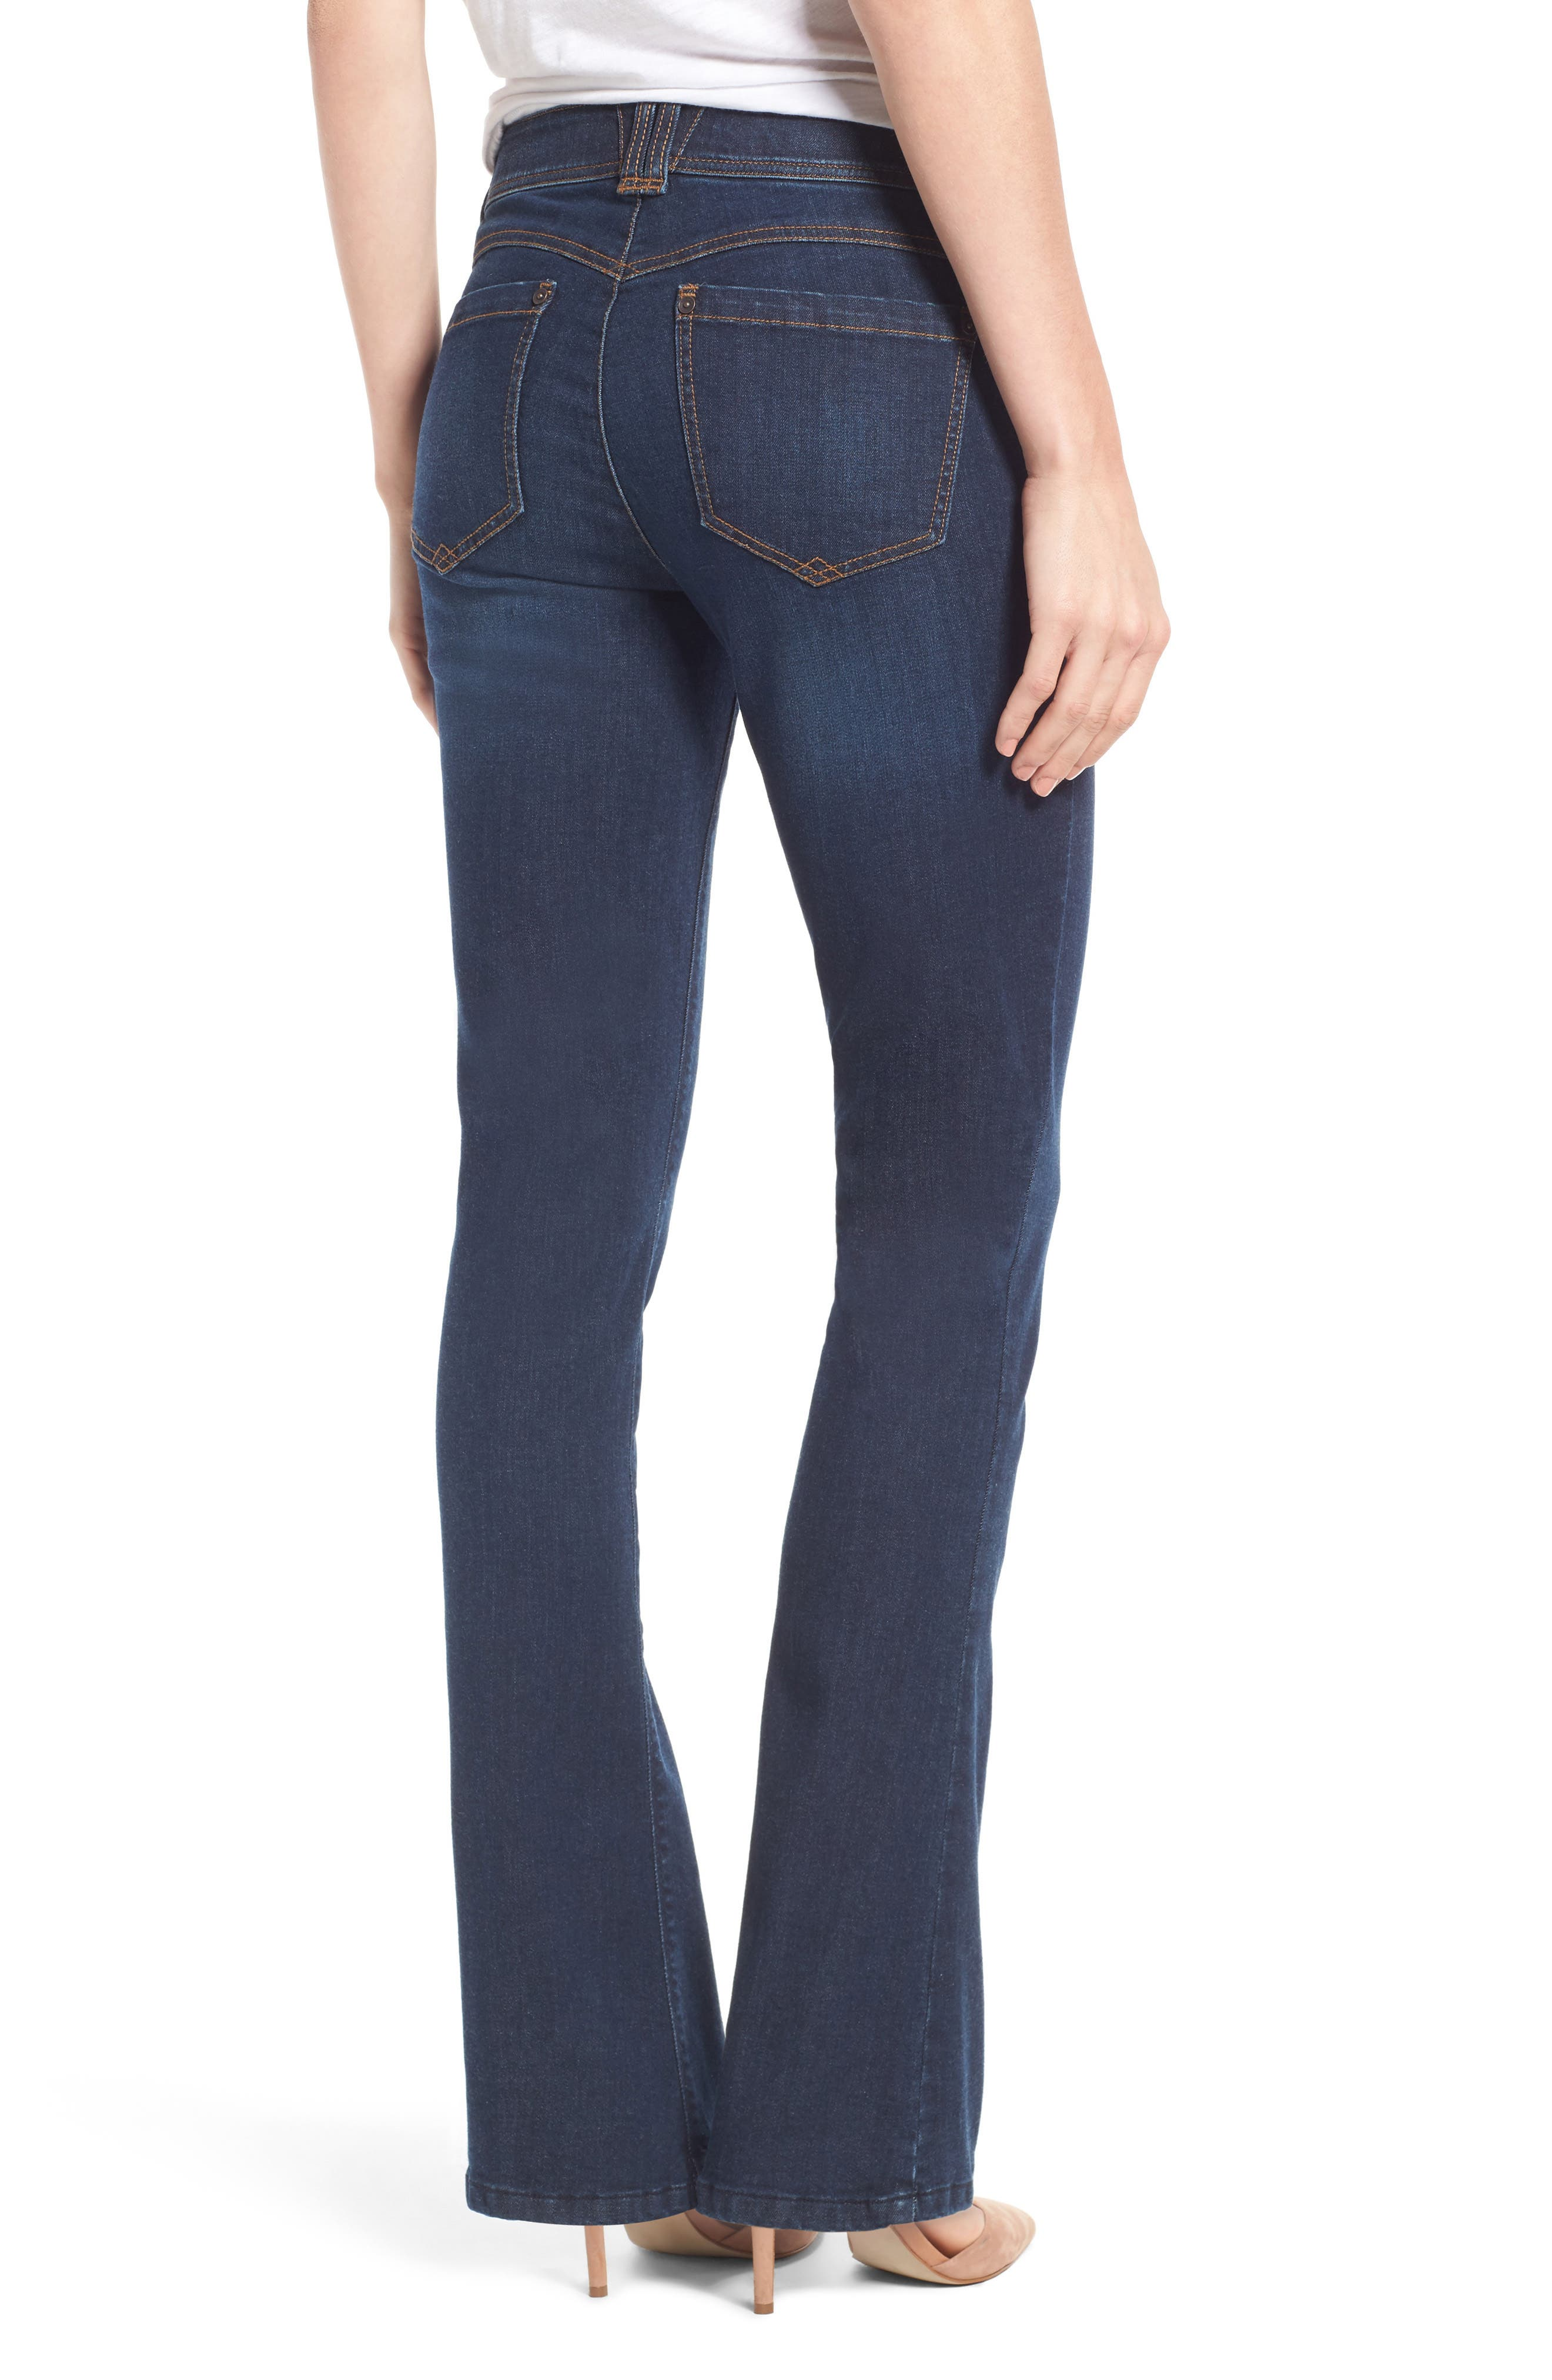 Alternate Image 3  - Wit & Wisdom Ab-solution Itty Bitty Bootcut Jeans (Regular & Petite) (Nordstrom Exclusive)